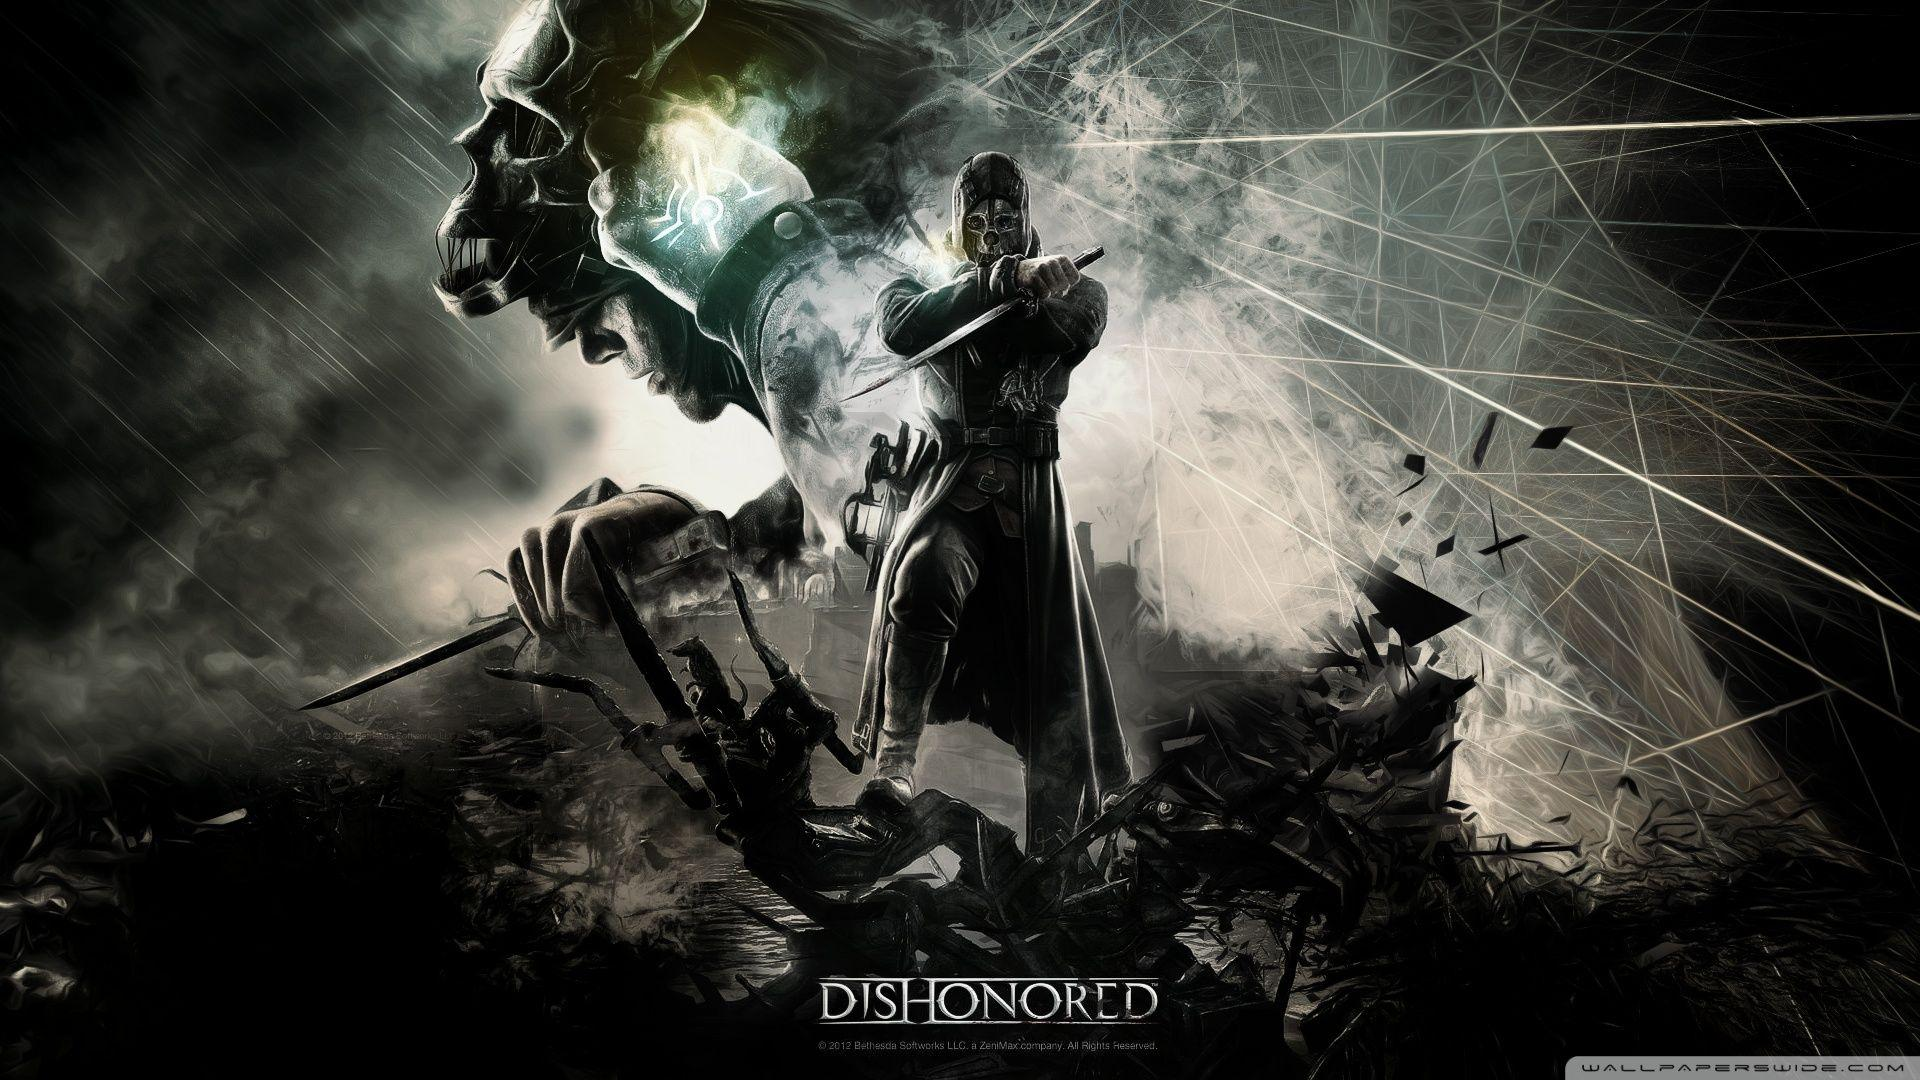 Dishonored Wallpapers - Wallpaper Cave